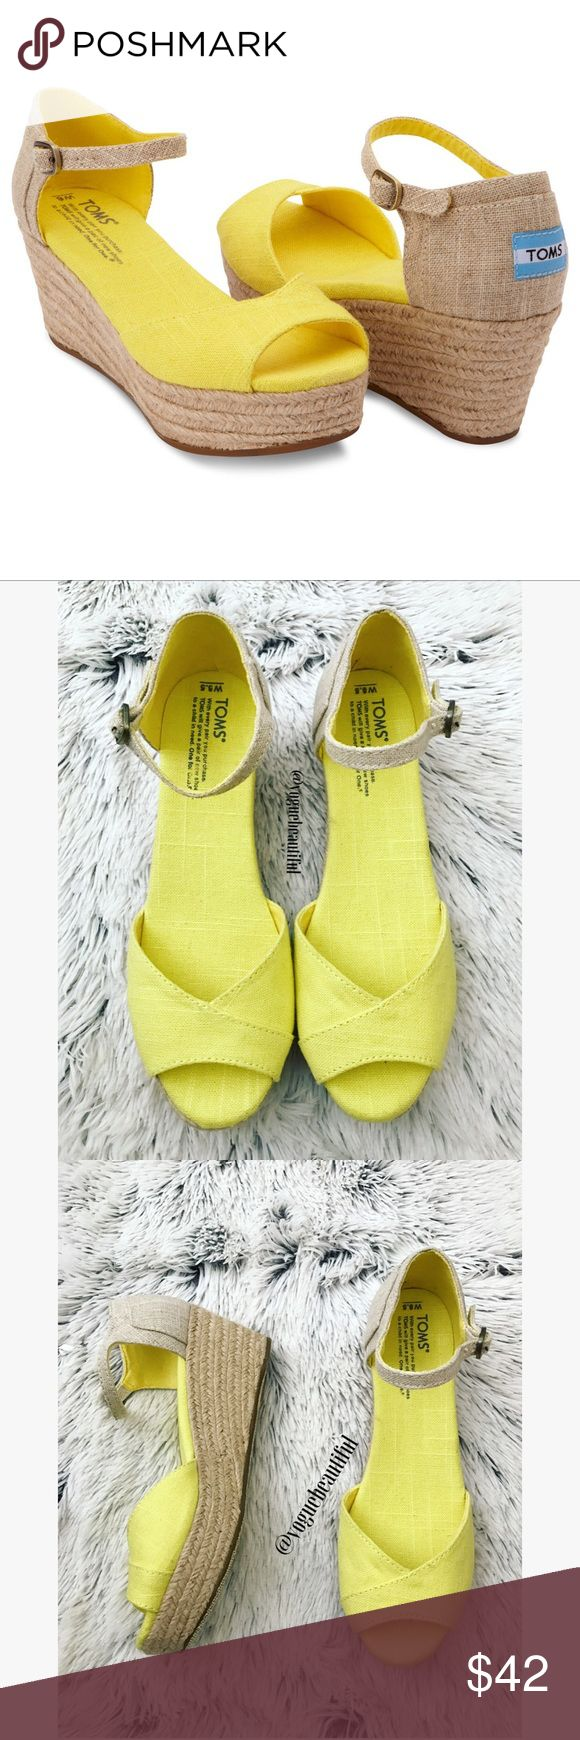 TOMS Yellow Wedges Yellow TOMS wedges with ankle strap • very good condition with very little to no wear • size 8.5 W • wedge height is 3 inches • color may vary slightly from photos • NO TRADES TOMS Shoes Wedges